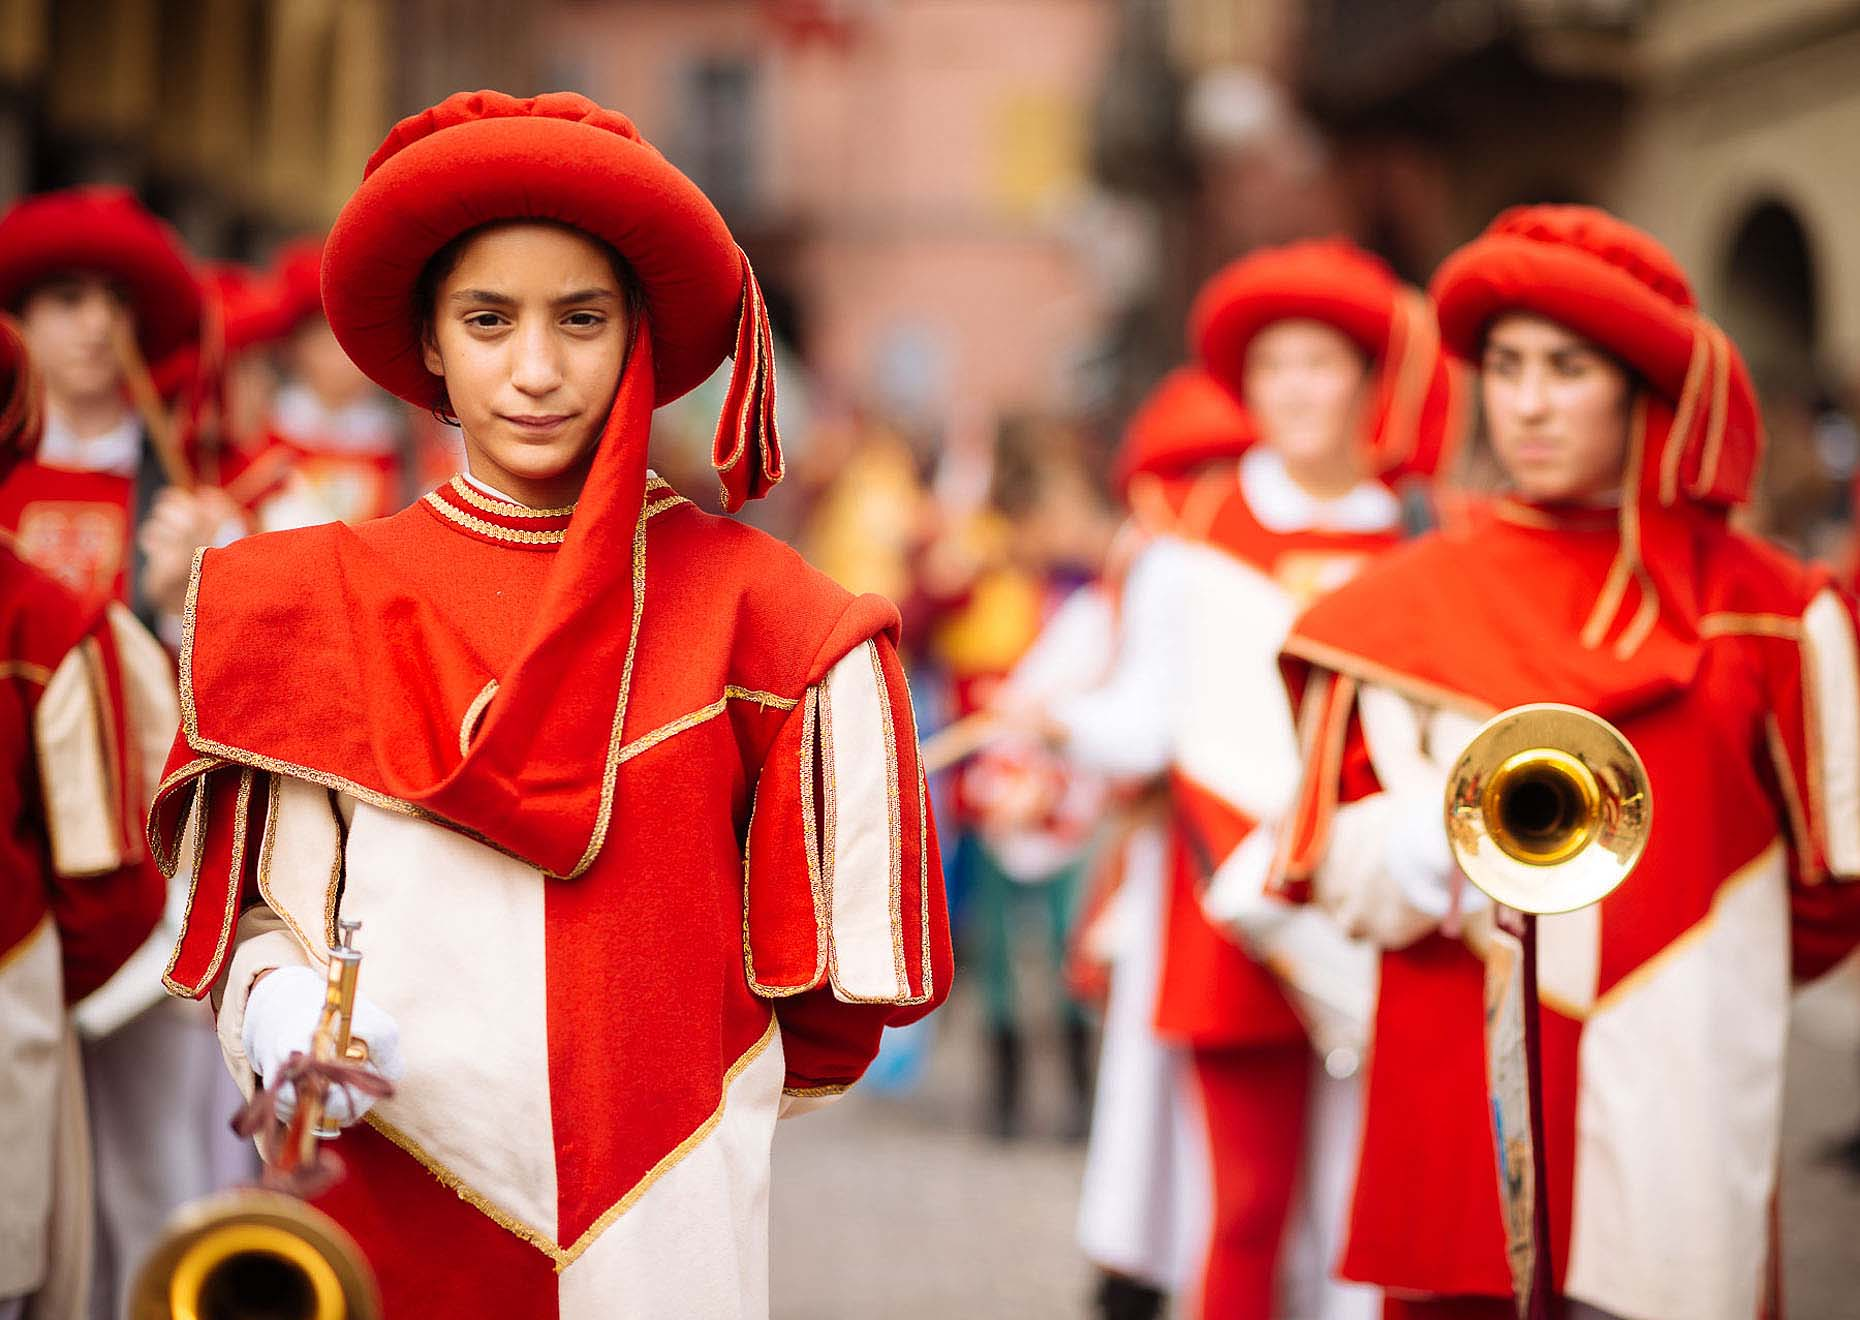 palio-di-asti-italy-children-instrument-parade-02